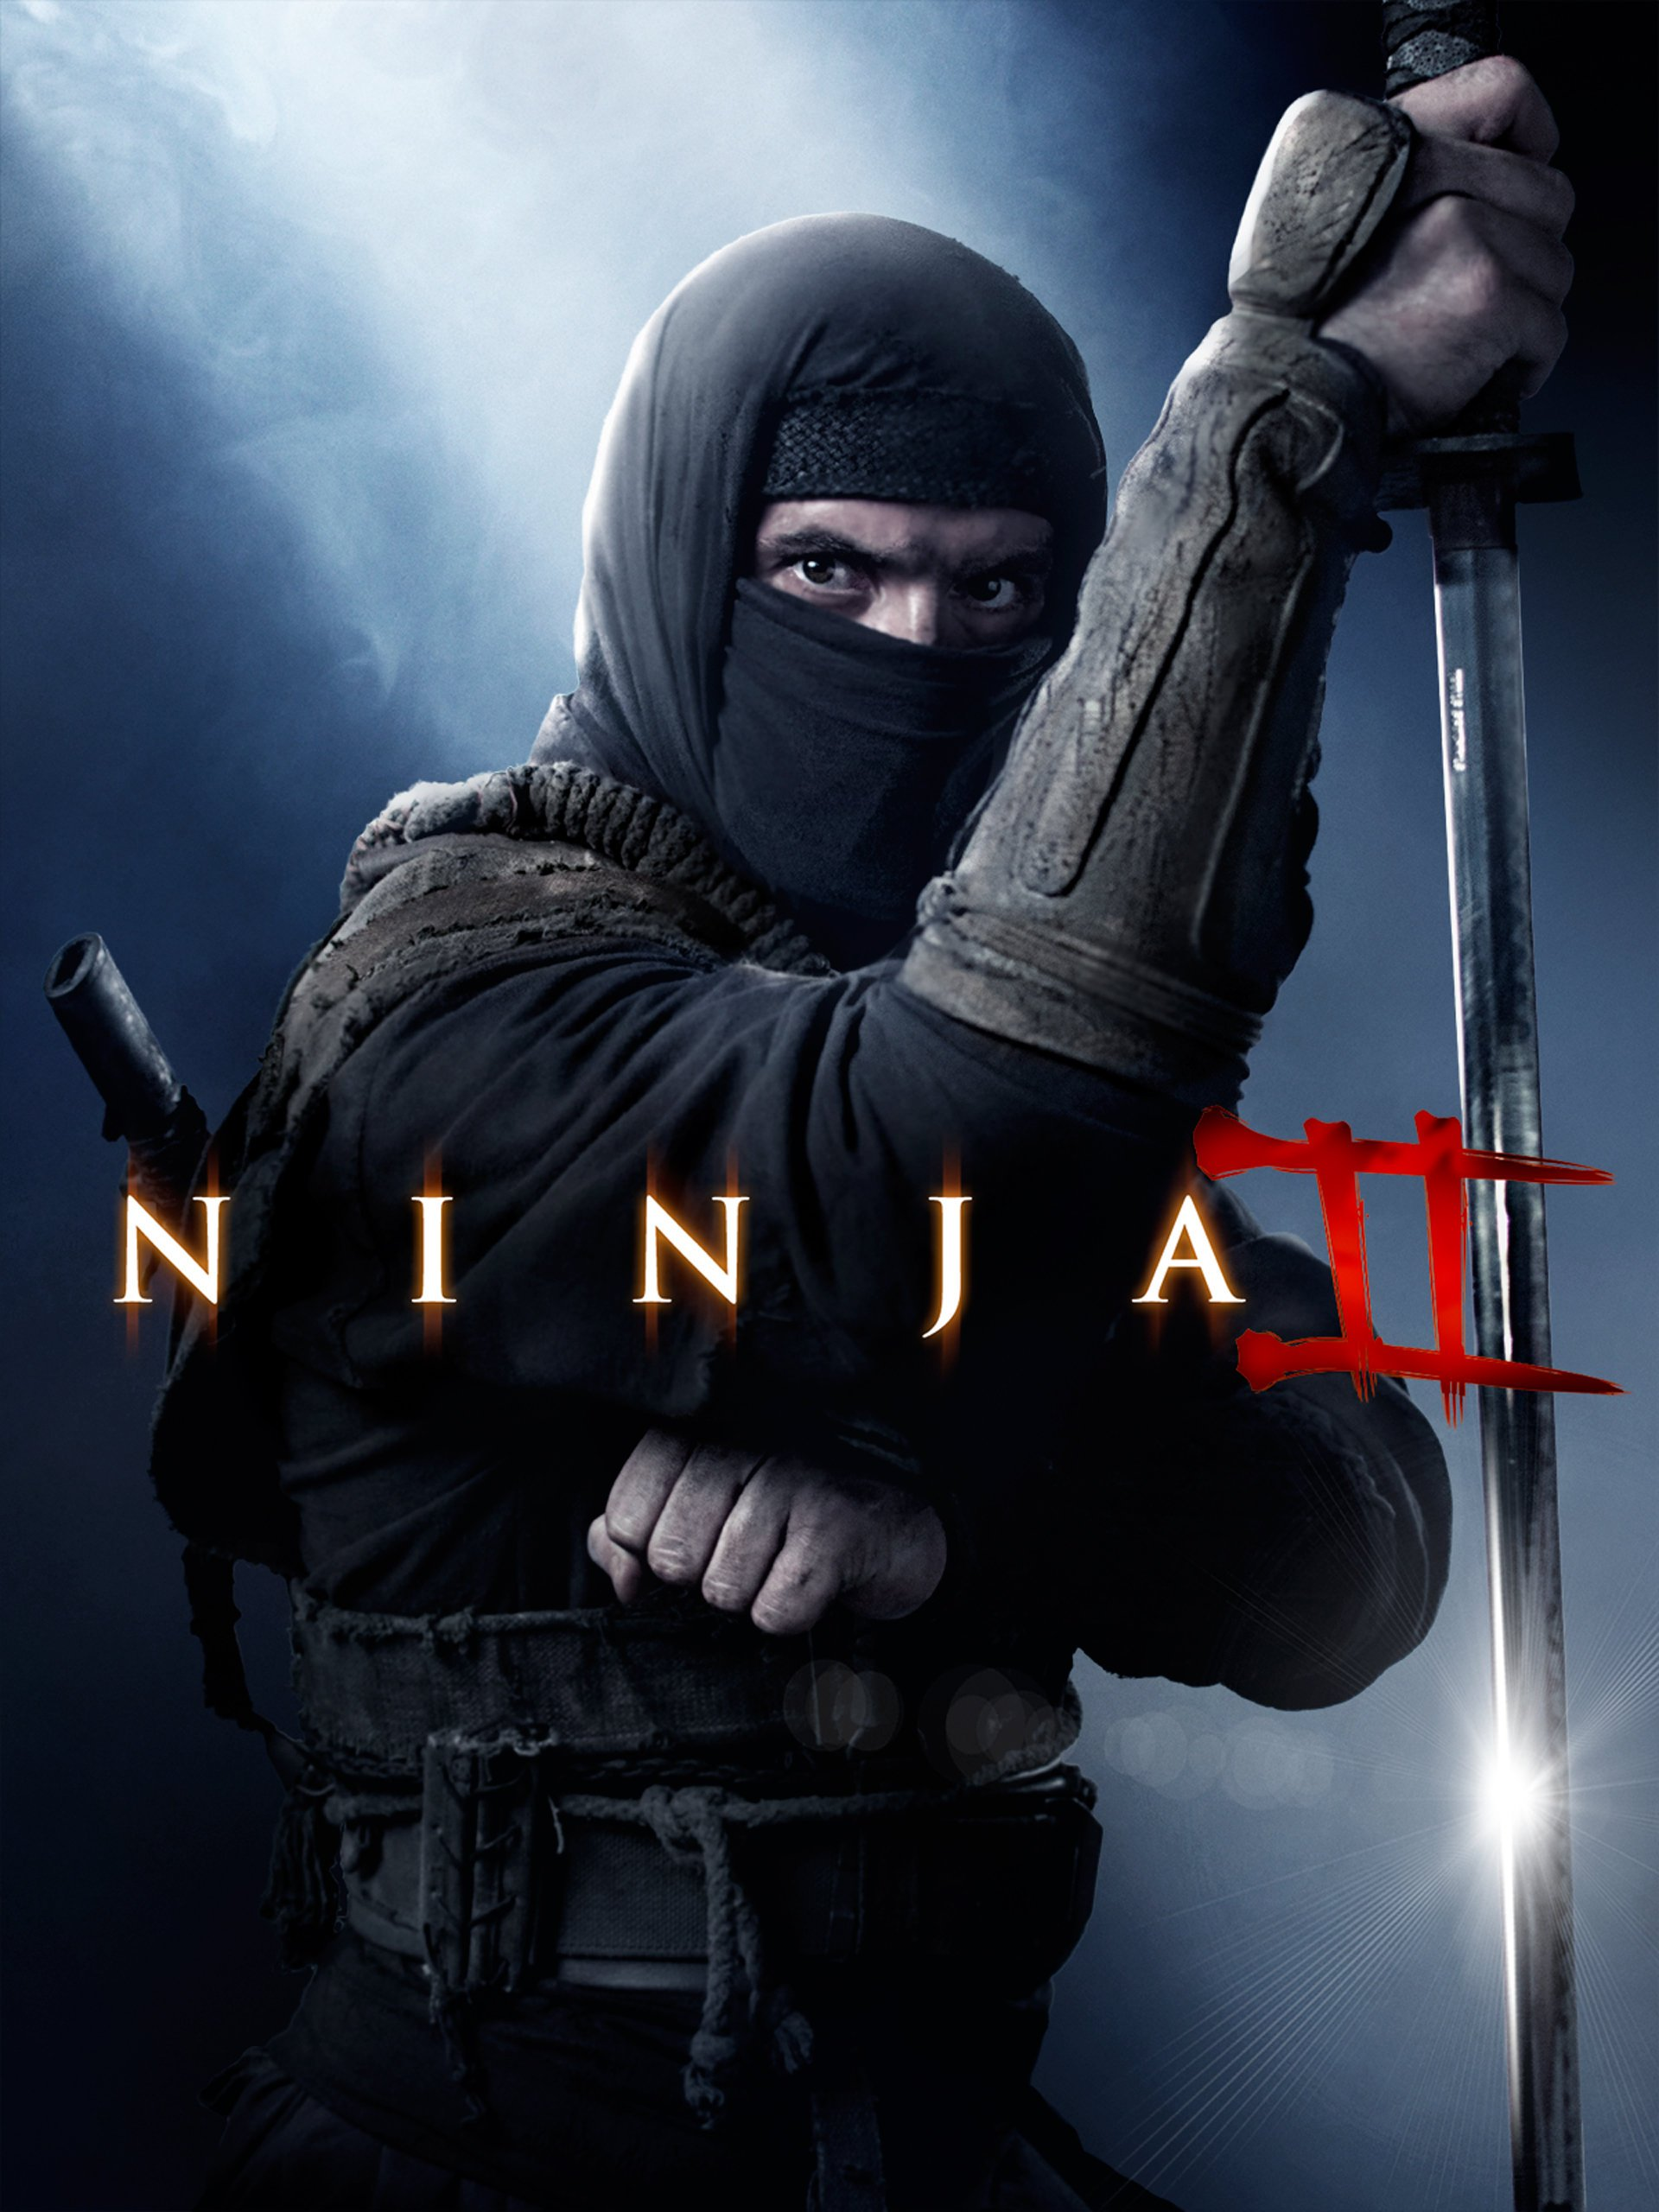 Amazon.com: Watch Ninja 2 Shadow Of A Tear | Prime Video